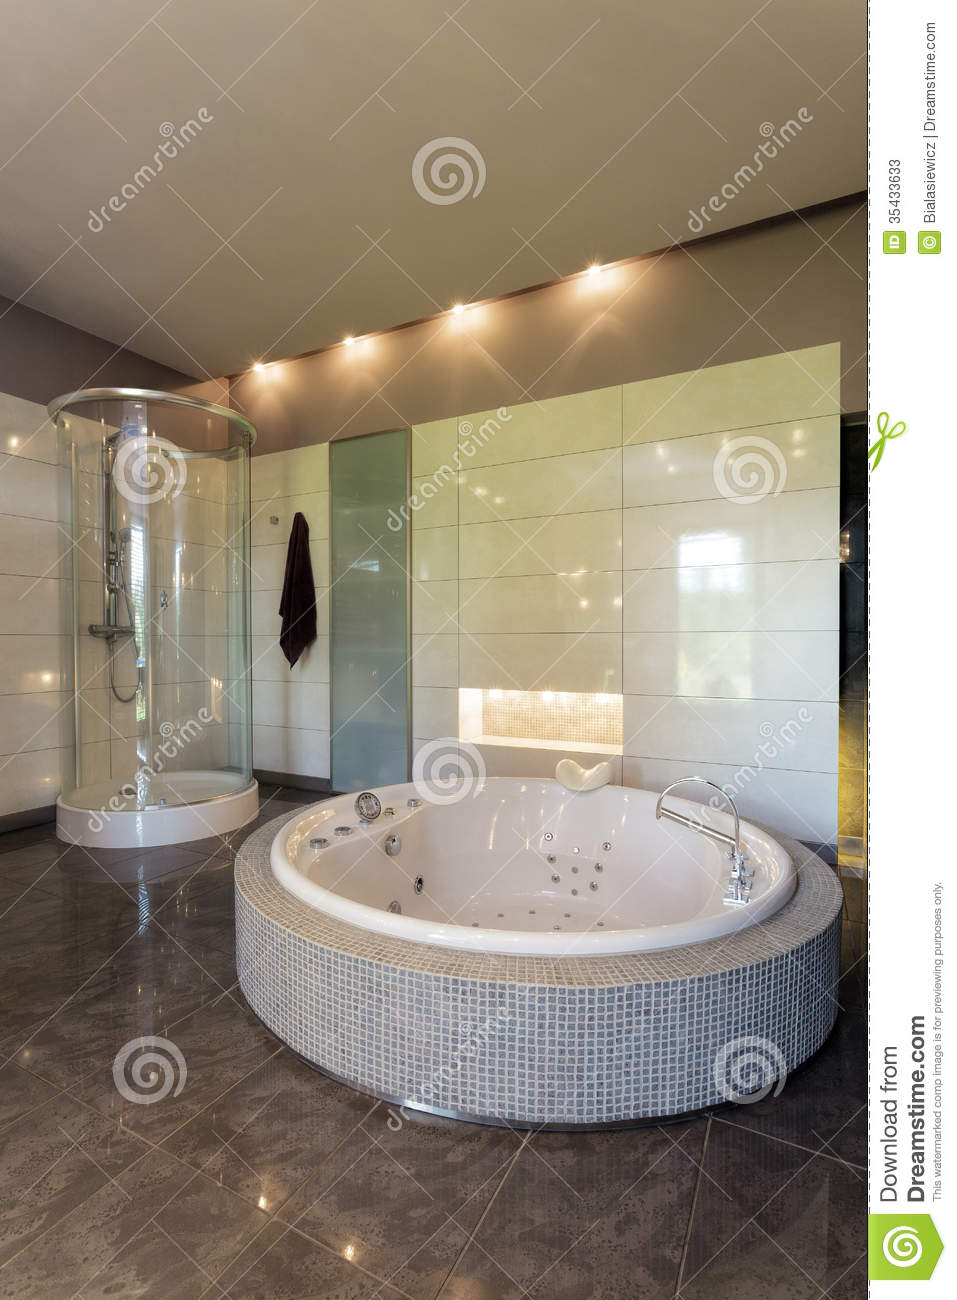 jacuzzi dans la salle de bains spacieuse image stock image 35433633. Black Bedroom Furniture Sets. Home Design Ideas